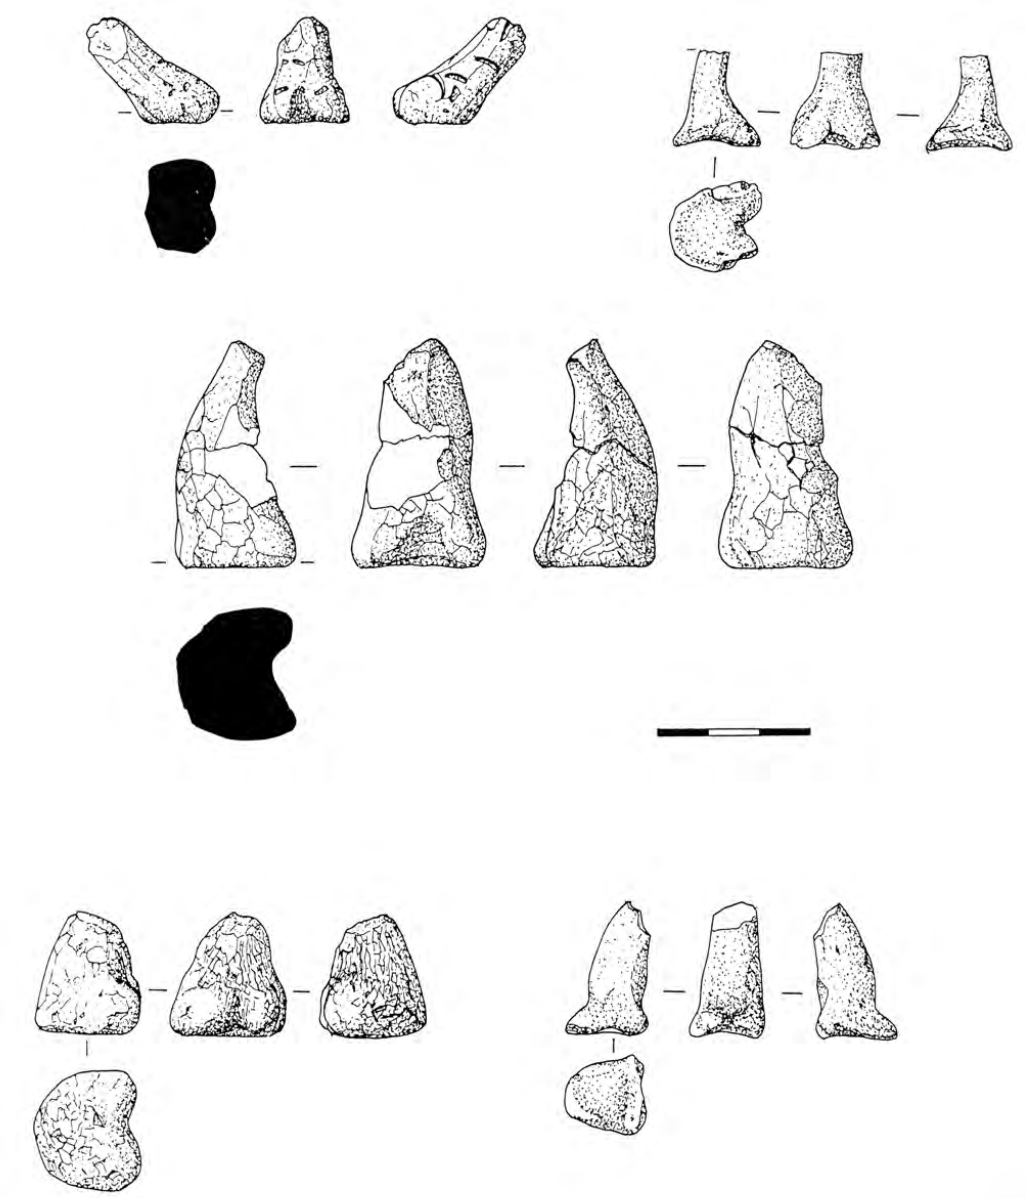 Several drawings of conical figurines from different angles.